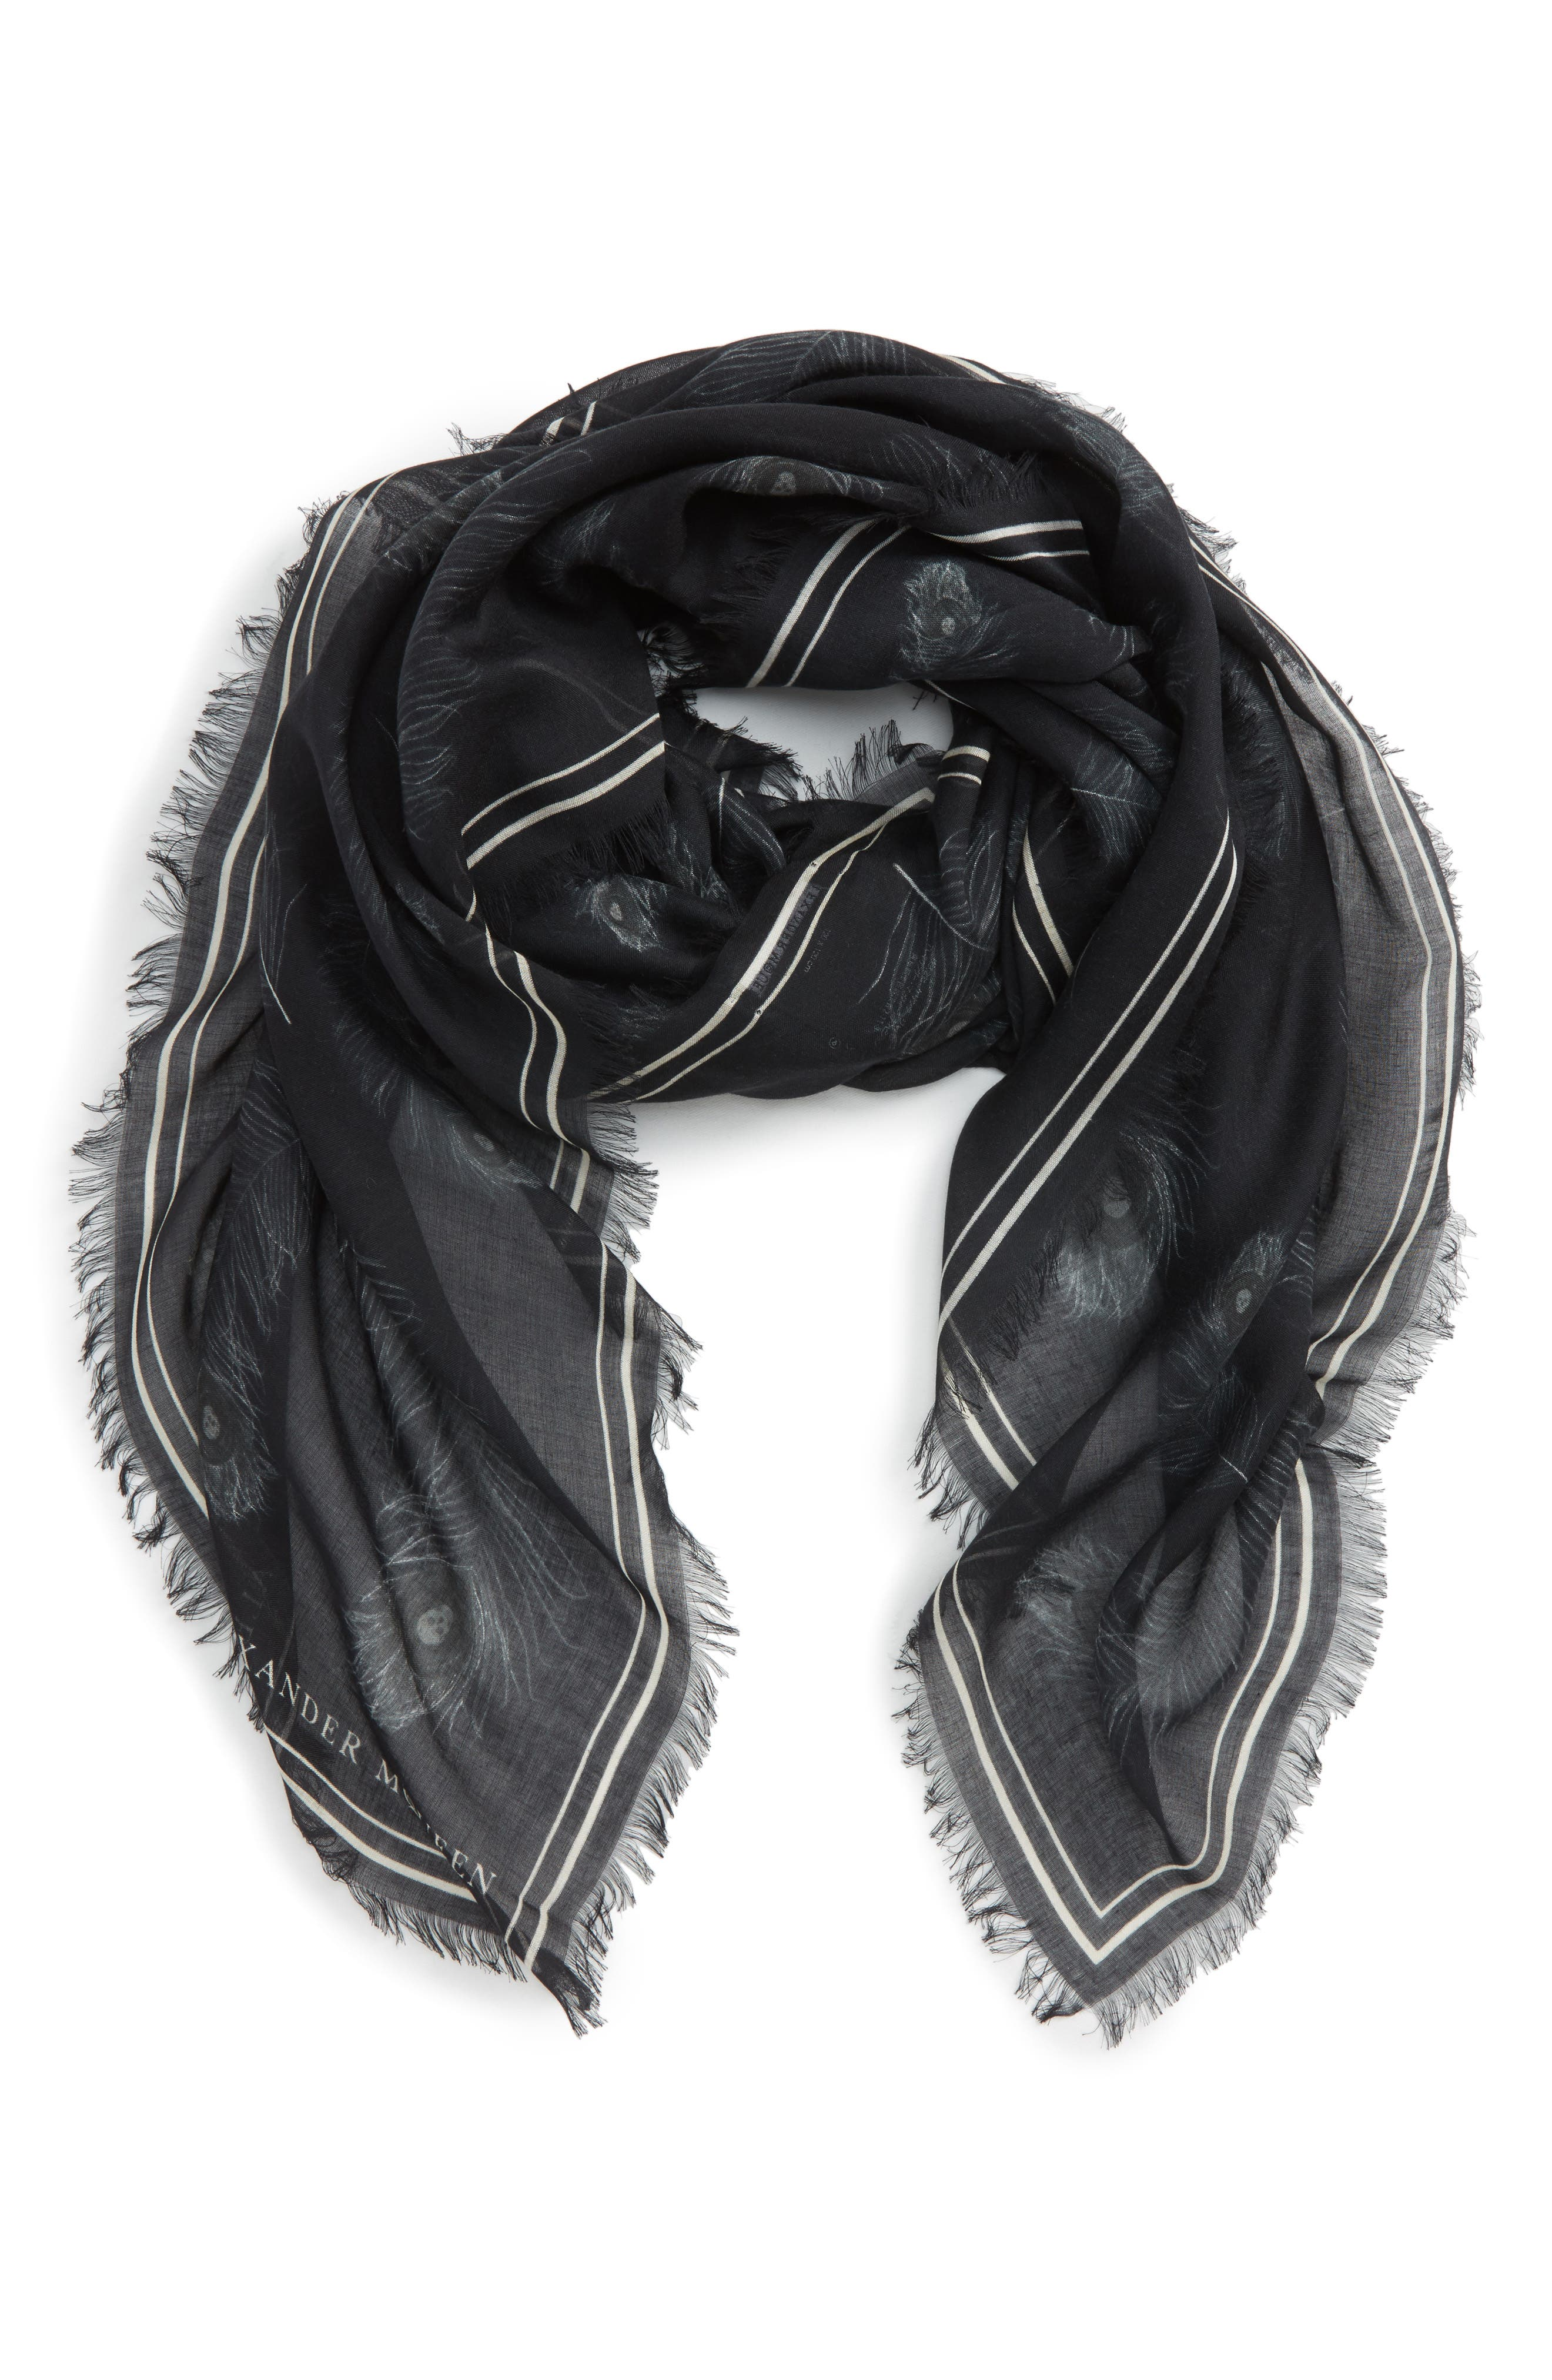 Peacock Feather Skull Scarf,                             Main thumbnail 1, color,                             Black/ Ivory